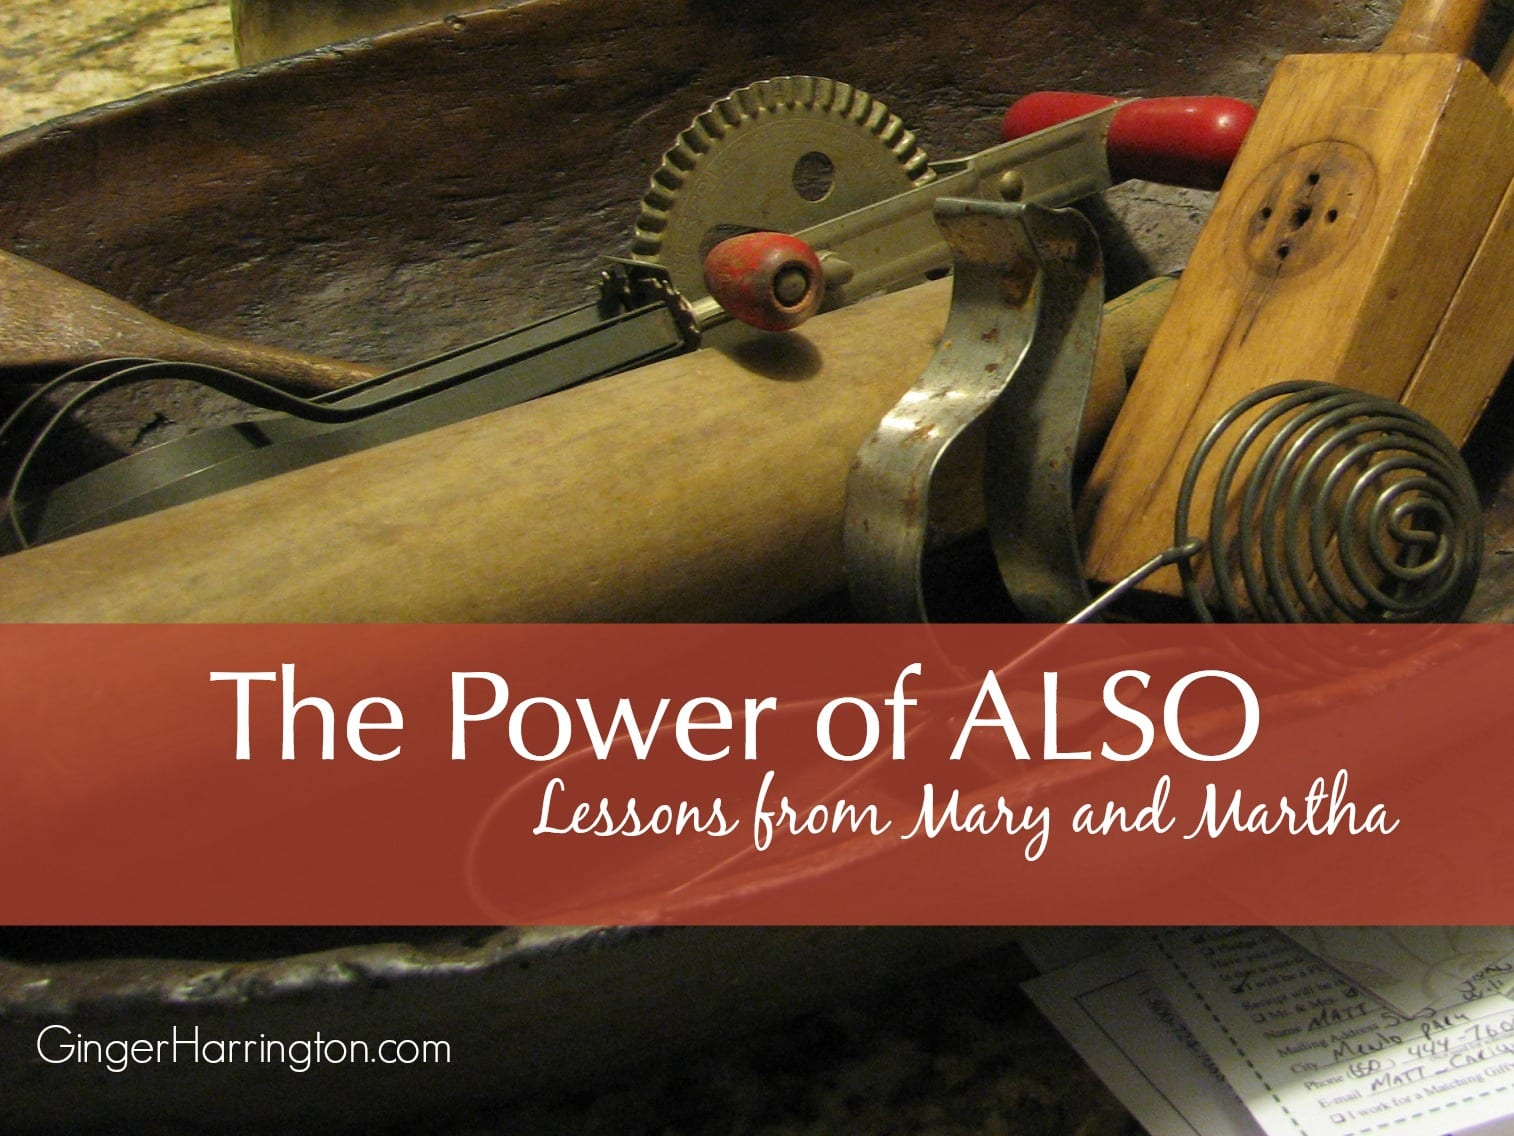 Lessons from Mary and Martha: The Power of Also